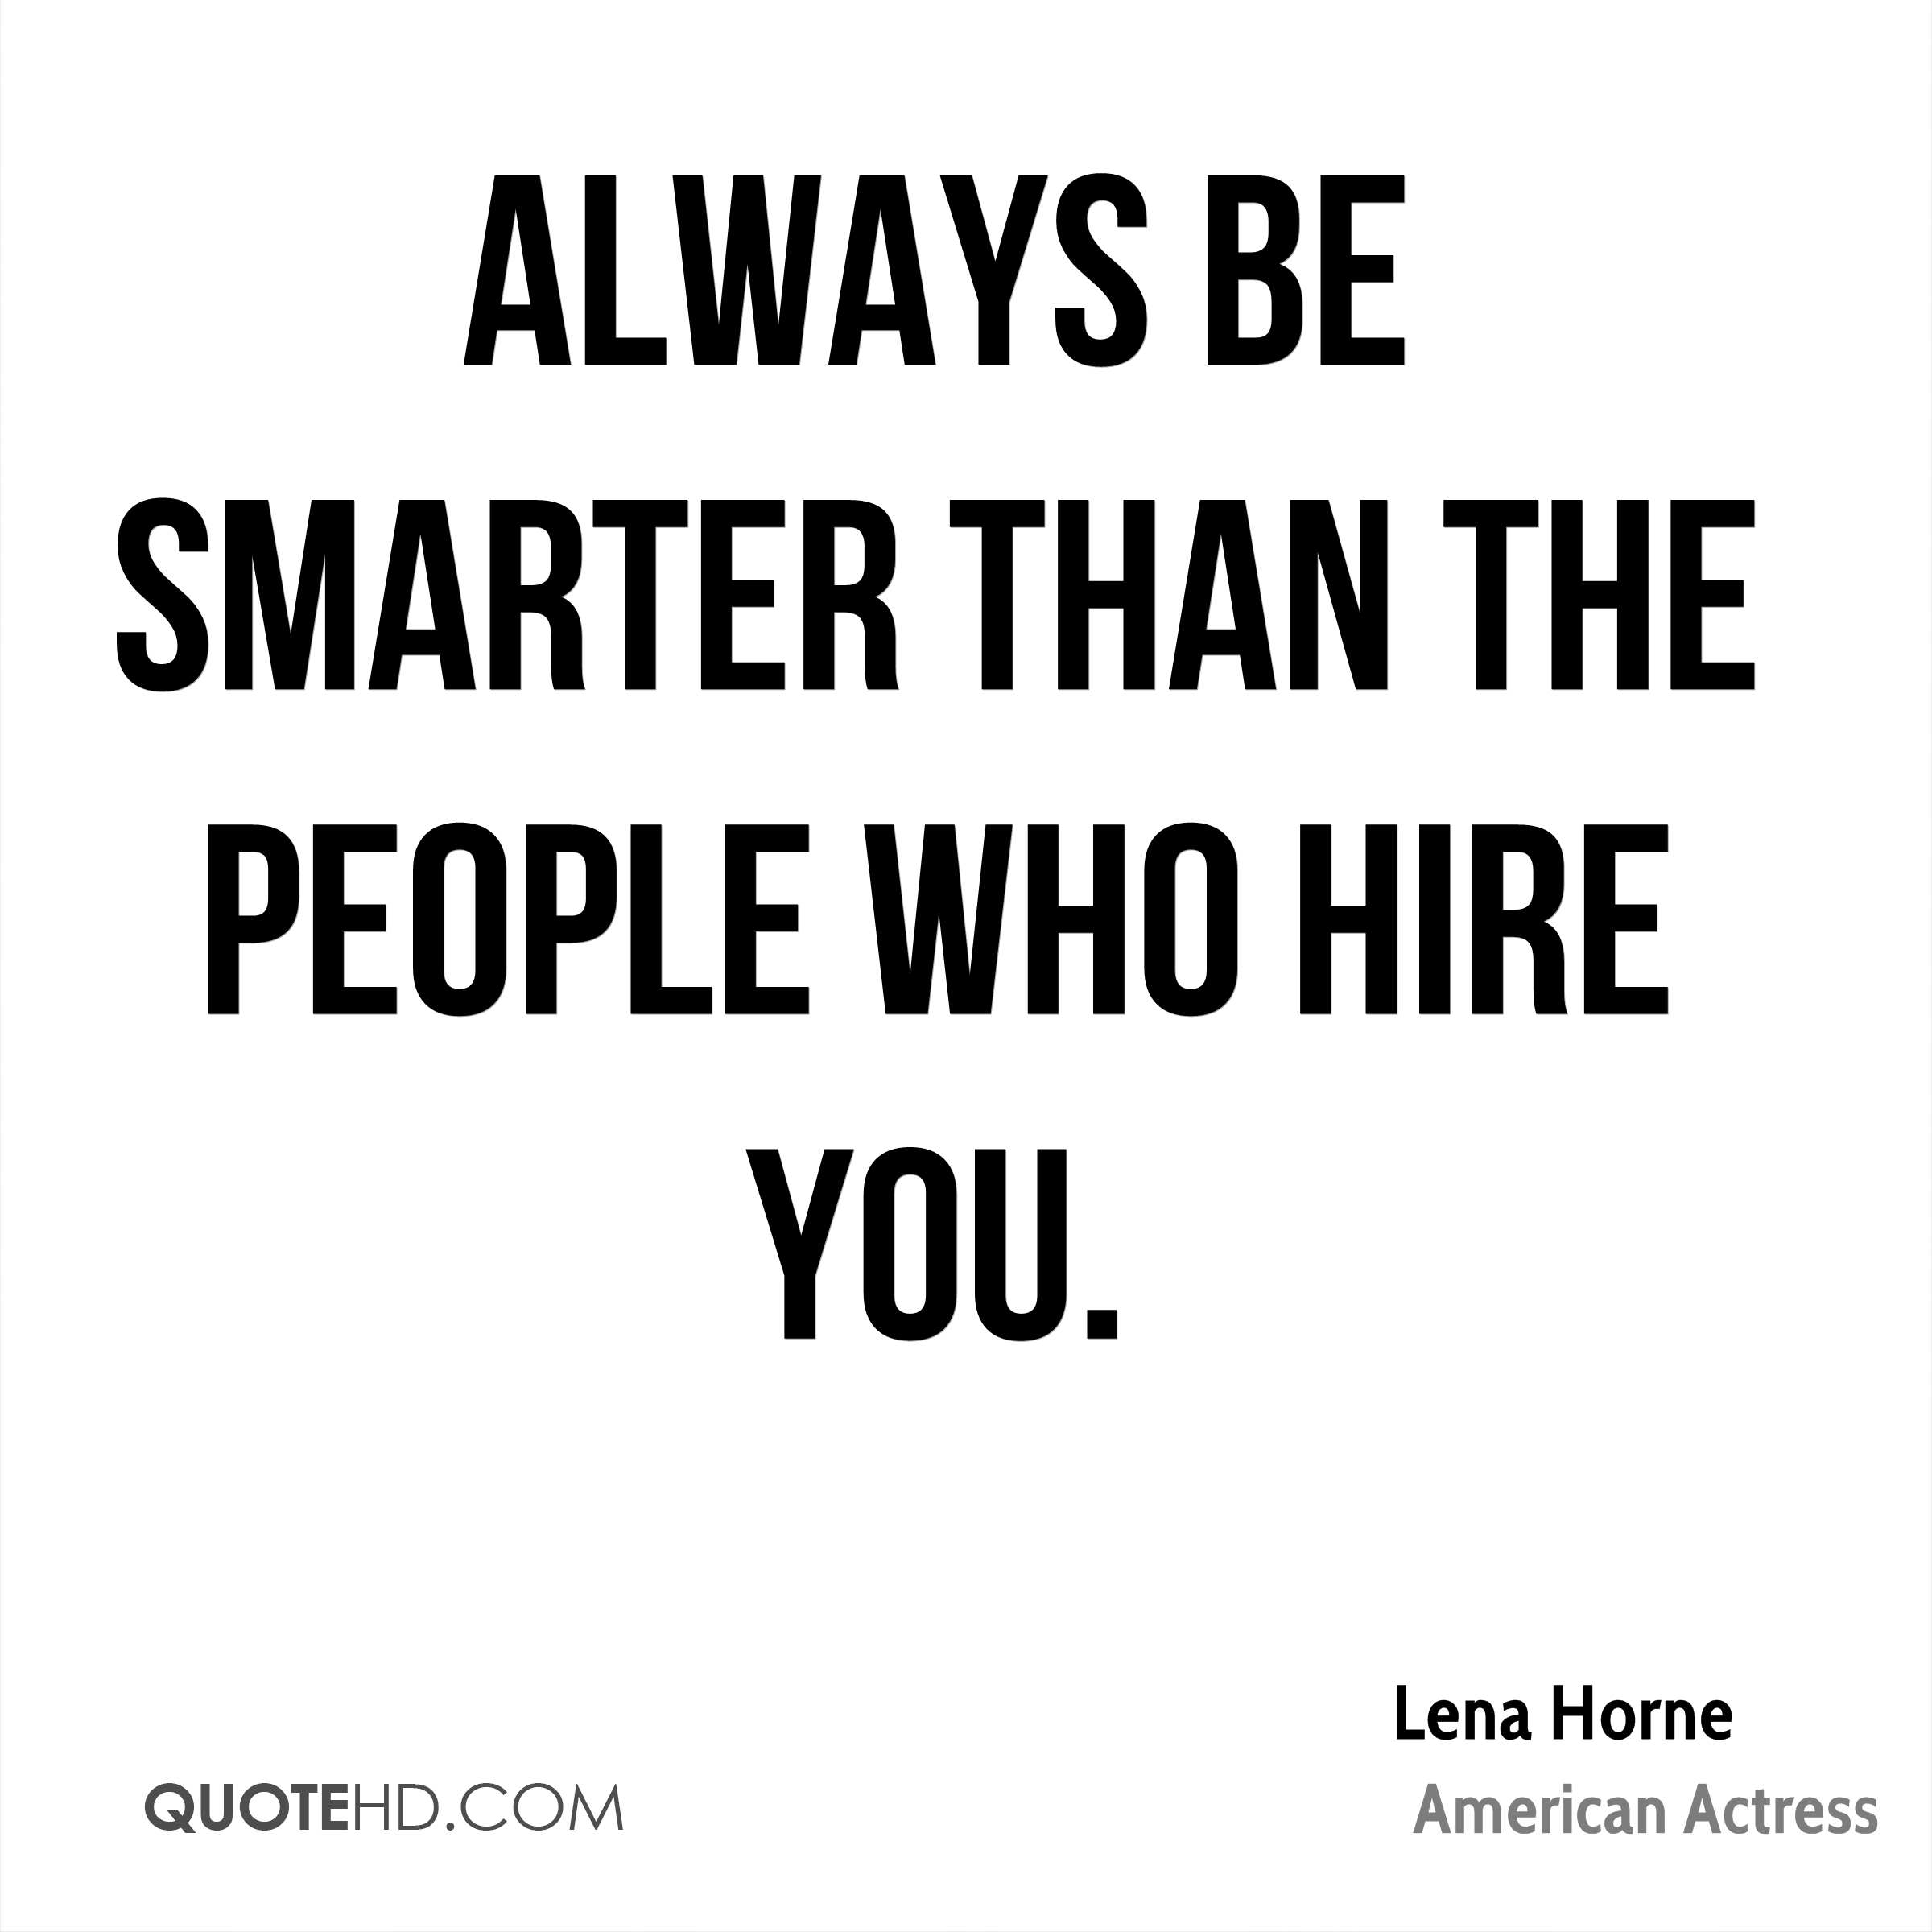 Always be smarter than the people who hire you.